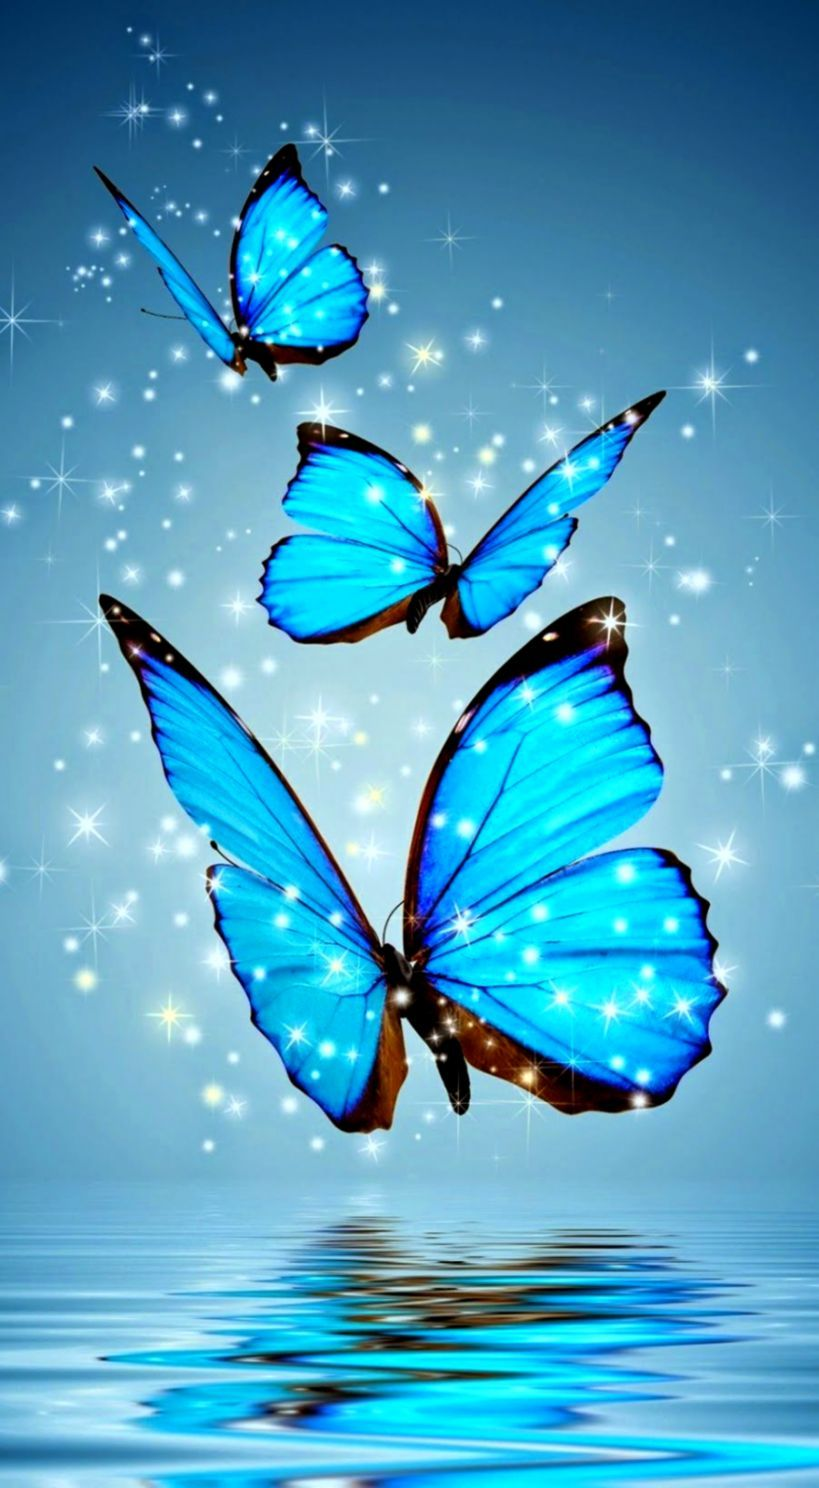 Full Hd Images For Android Mobile Wallpaper Images Girly Cute Wallpaper Hd Is Amazing Hd Android Wallpaper Blue Butterfly Wallpaper Blue Butterfly Wallpaper